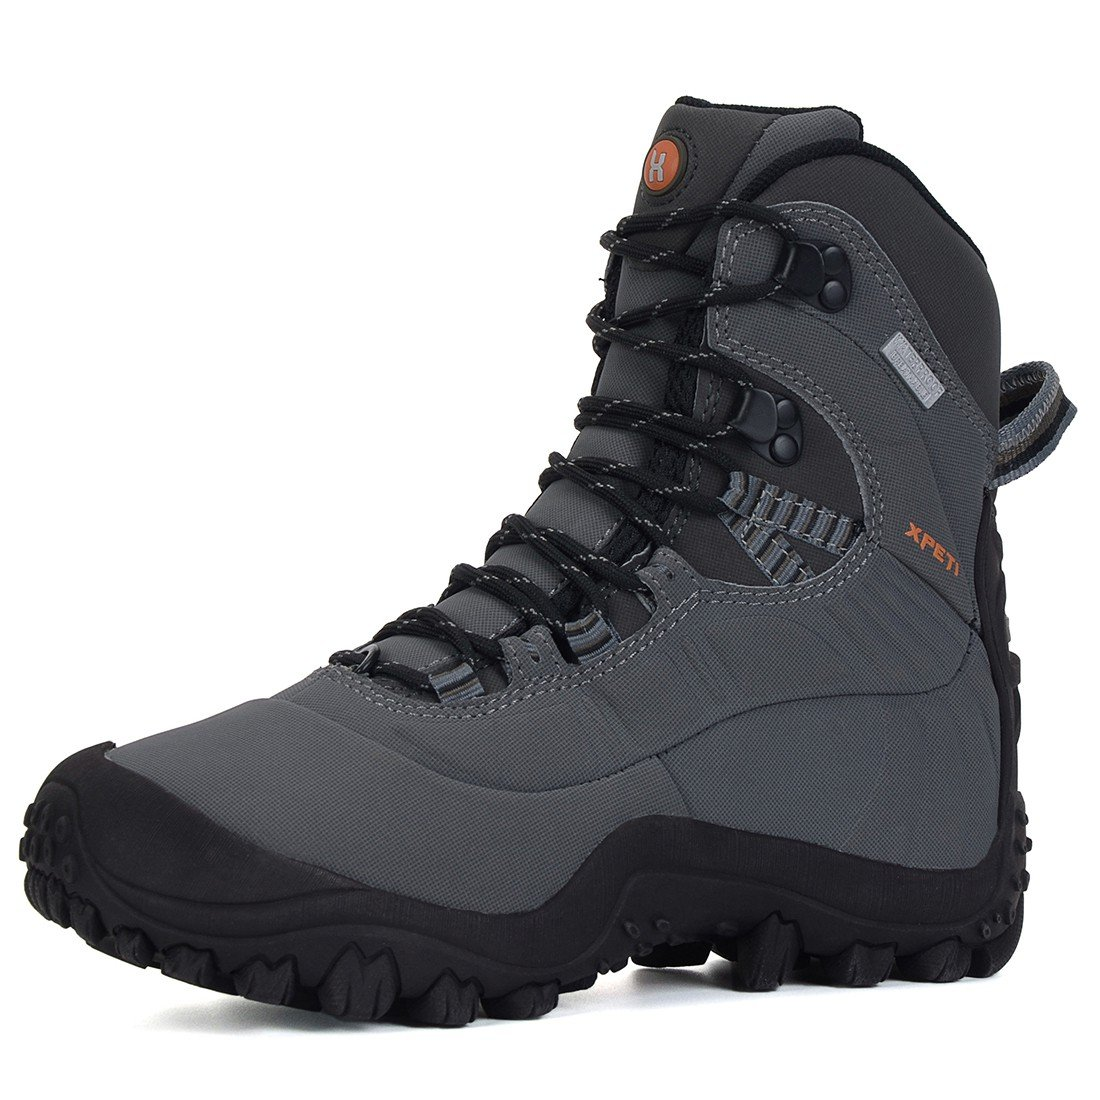 XPETI Women's Waterproof Mid High-Top Hiking Outdoor Boot Light Grey 8